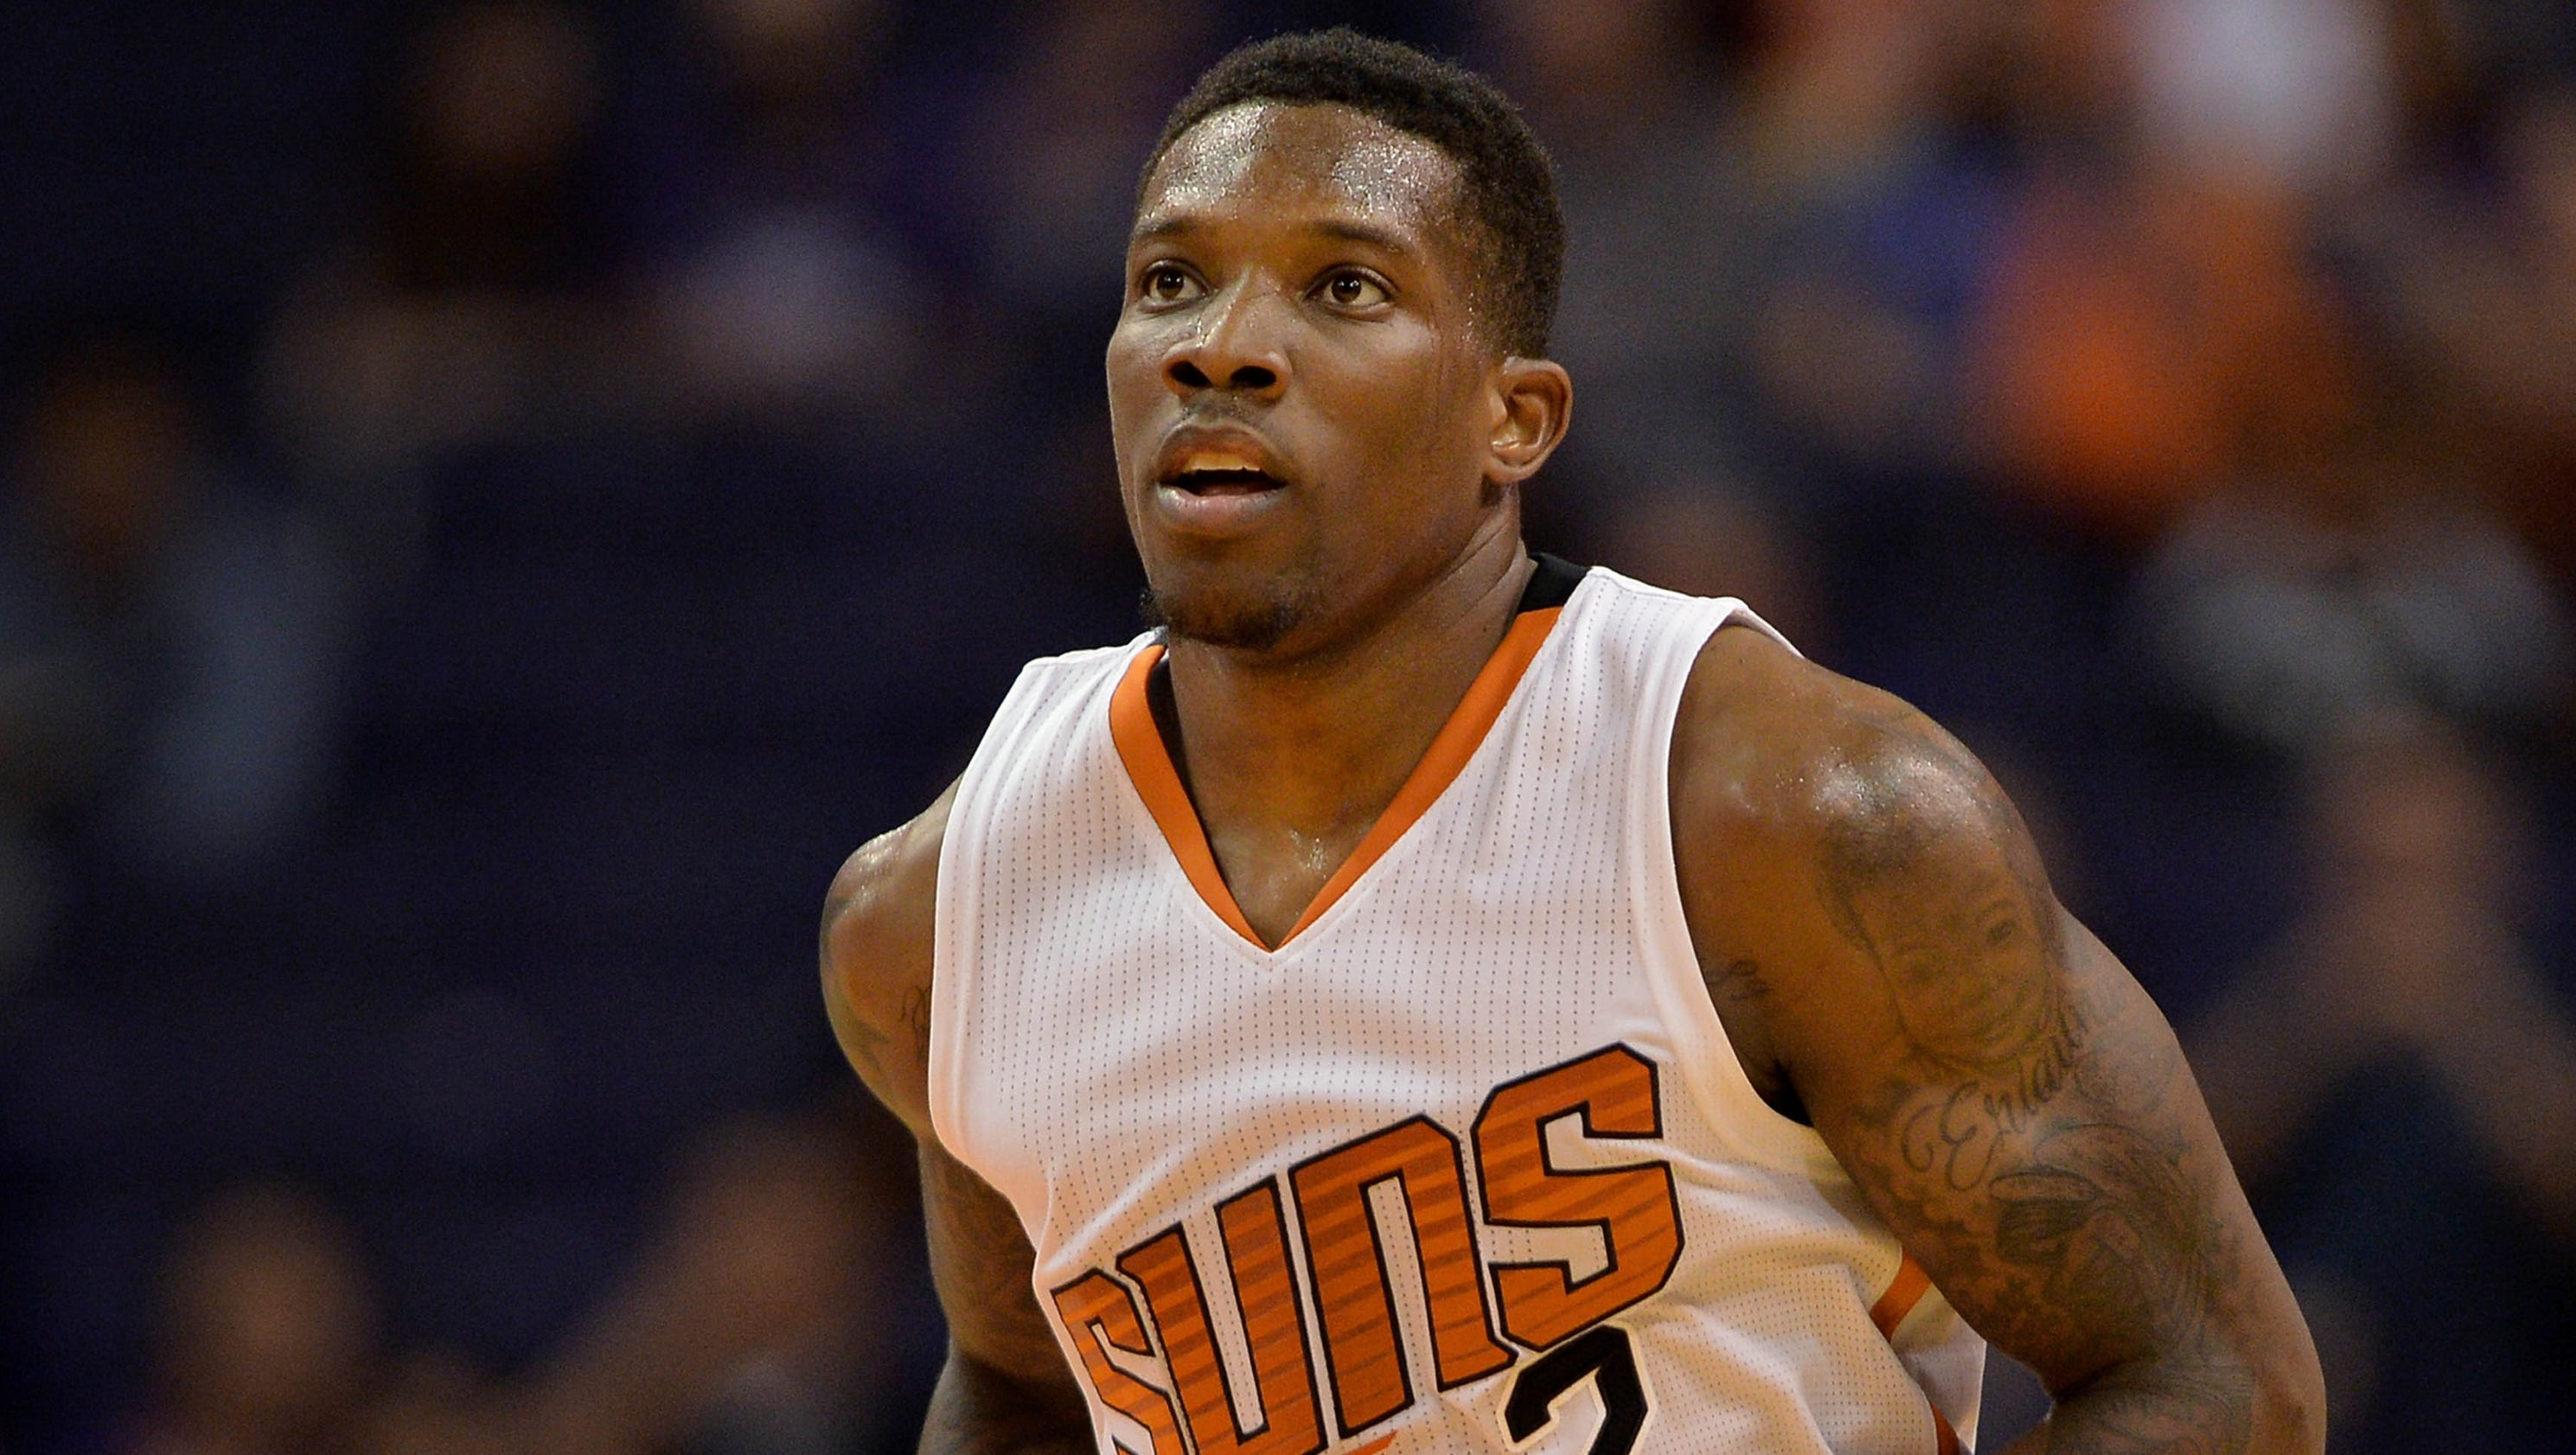 Phoenix Suns guard Eric Bledsoe to miss remainder of season